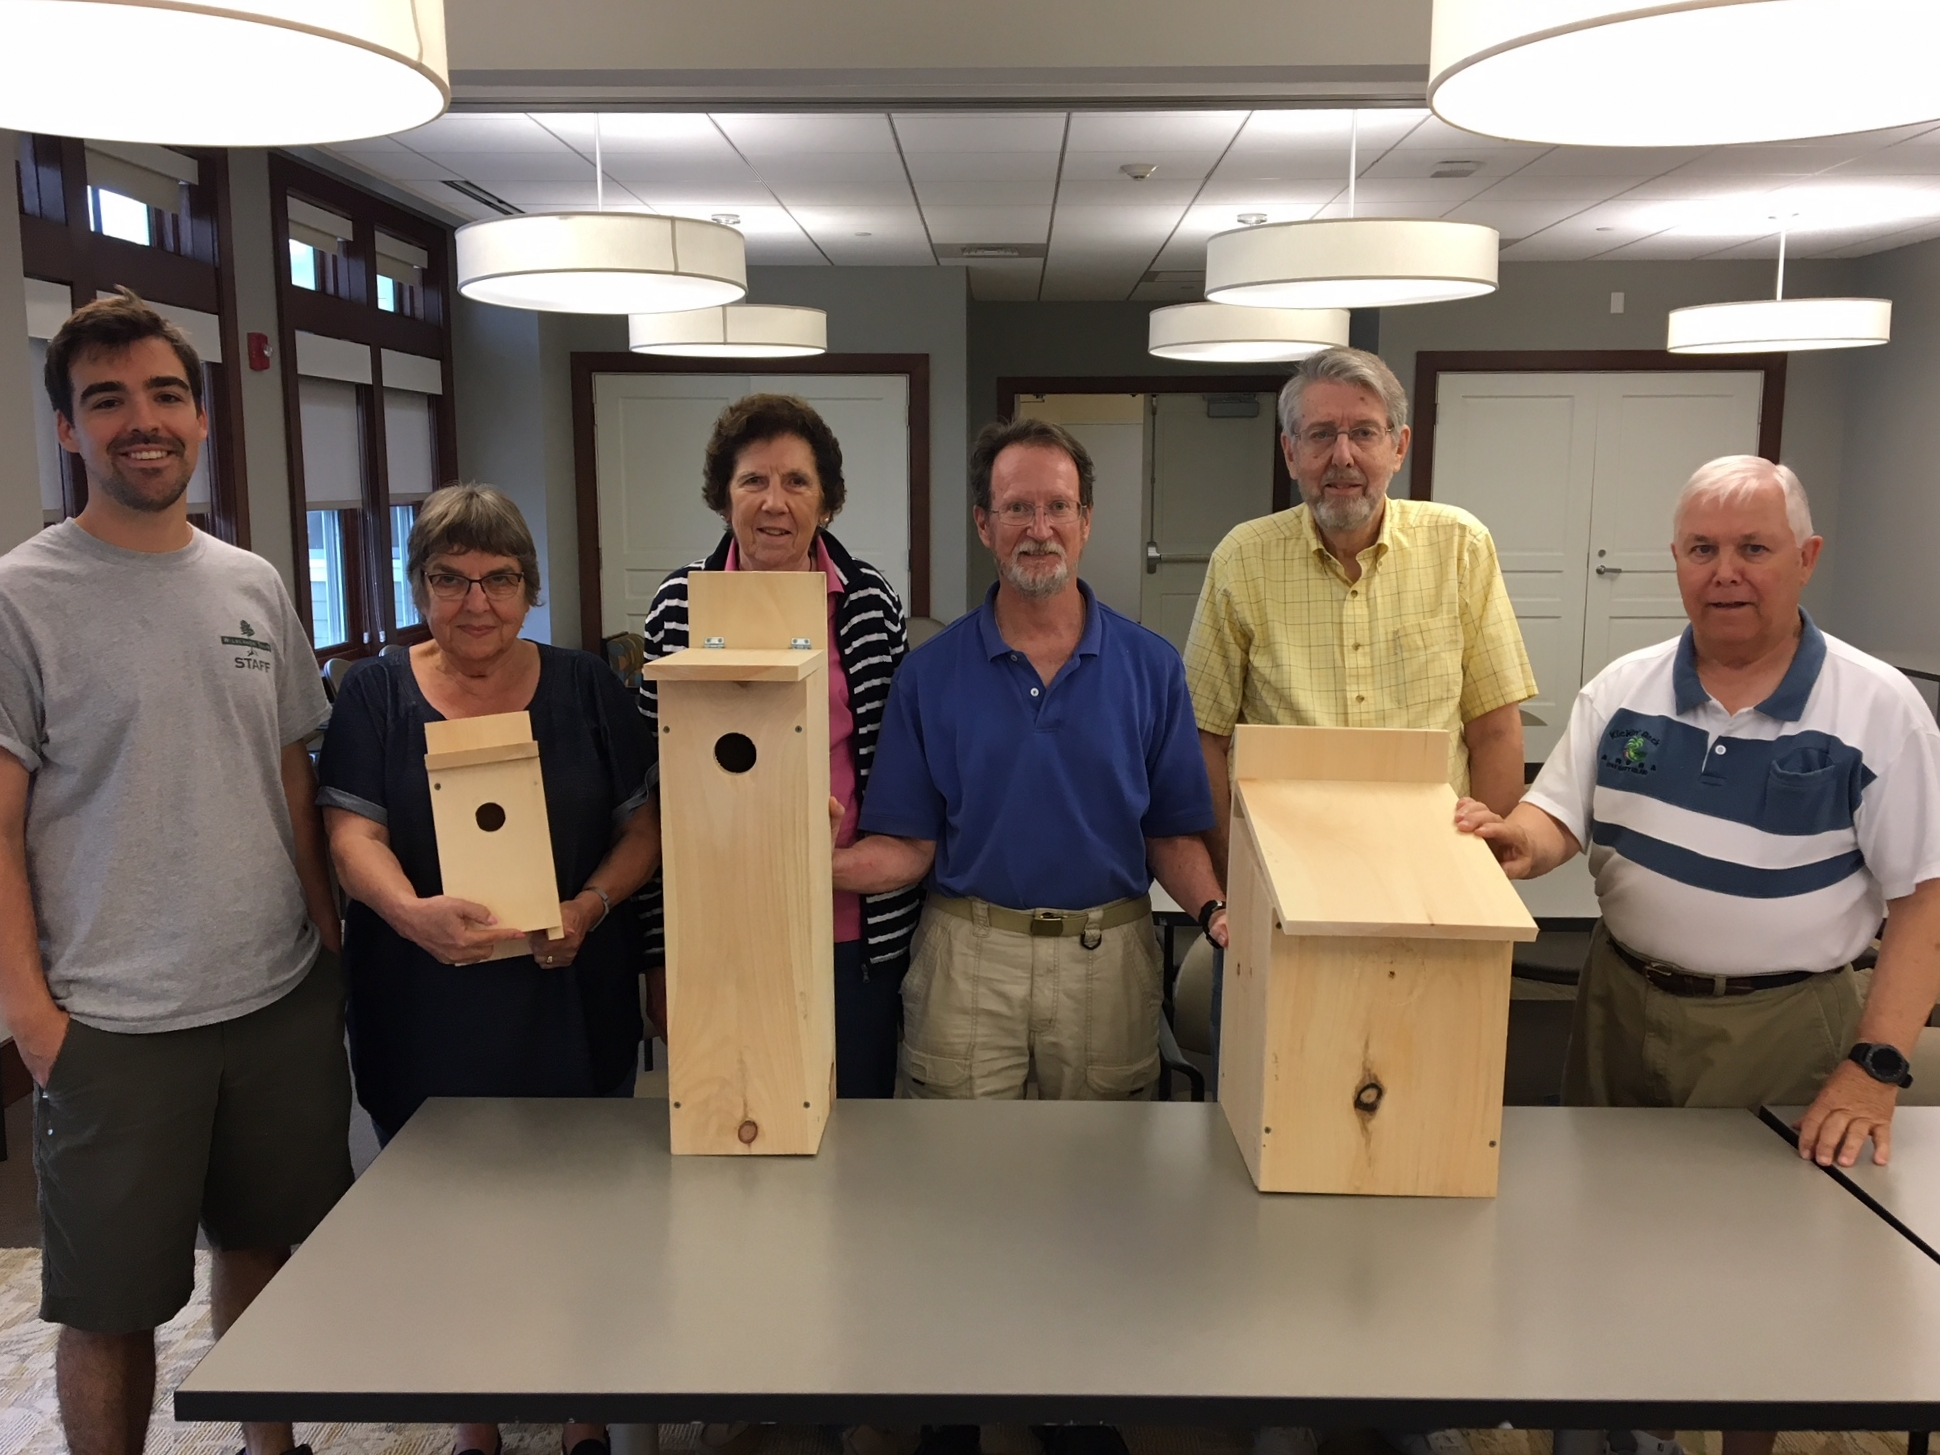 Conor Michaud (far left) and the residents of Fairing Way show off three of the bird boxes they built: (from left to right) a bluebird box, a norther flicker box and an eastern screech owl box.